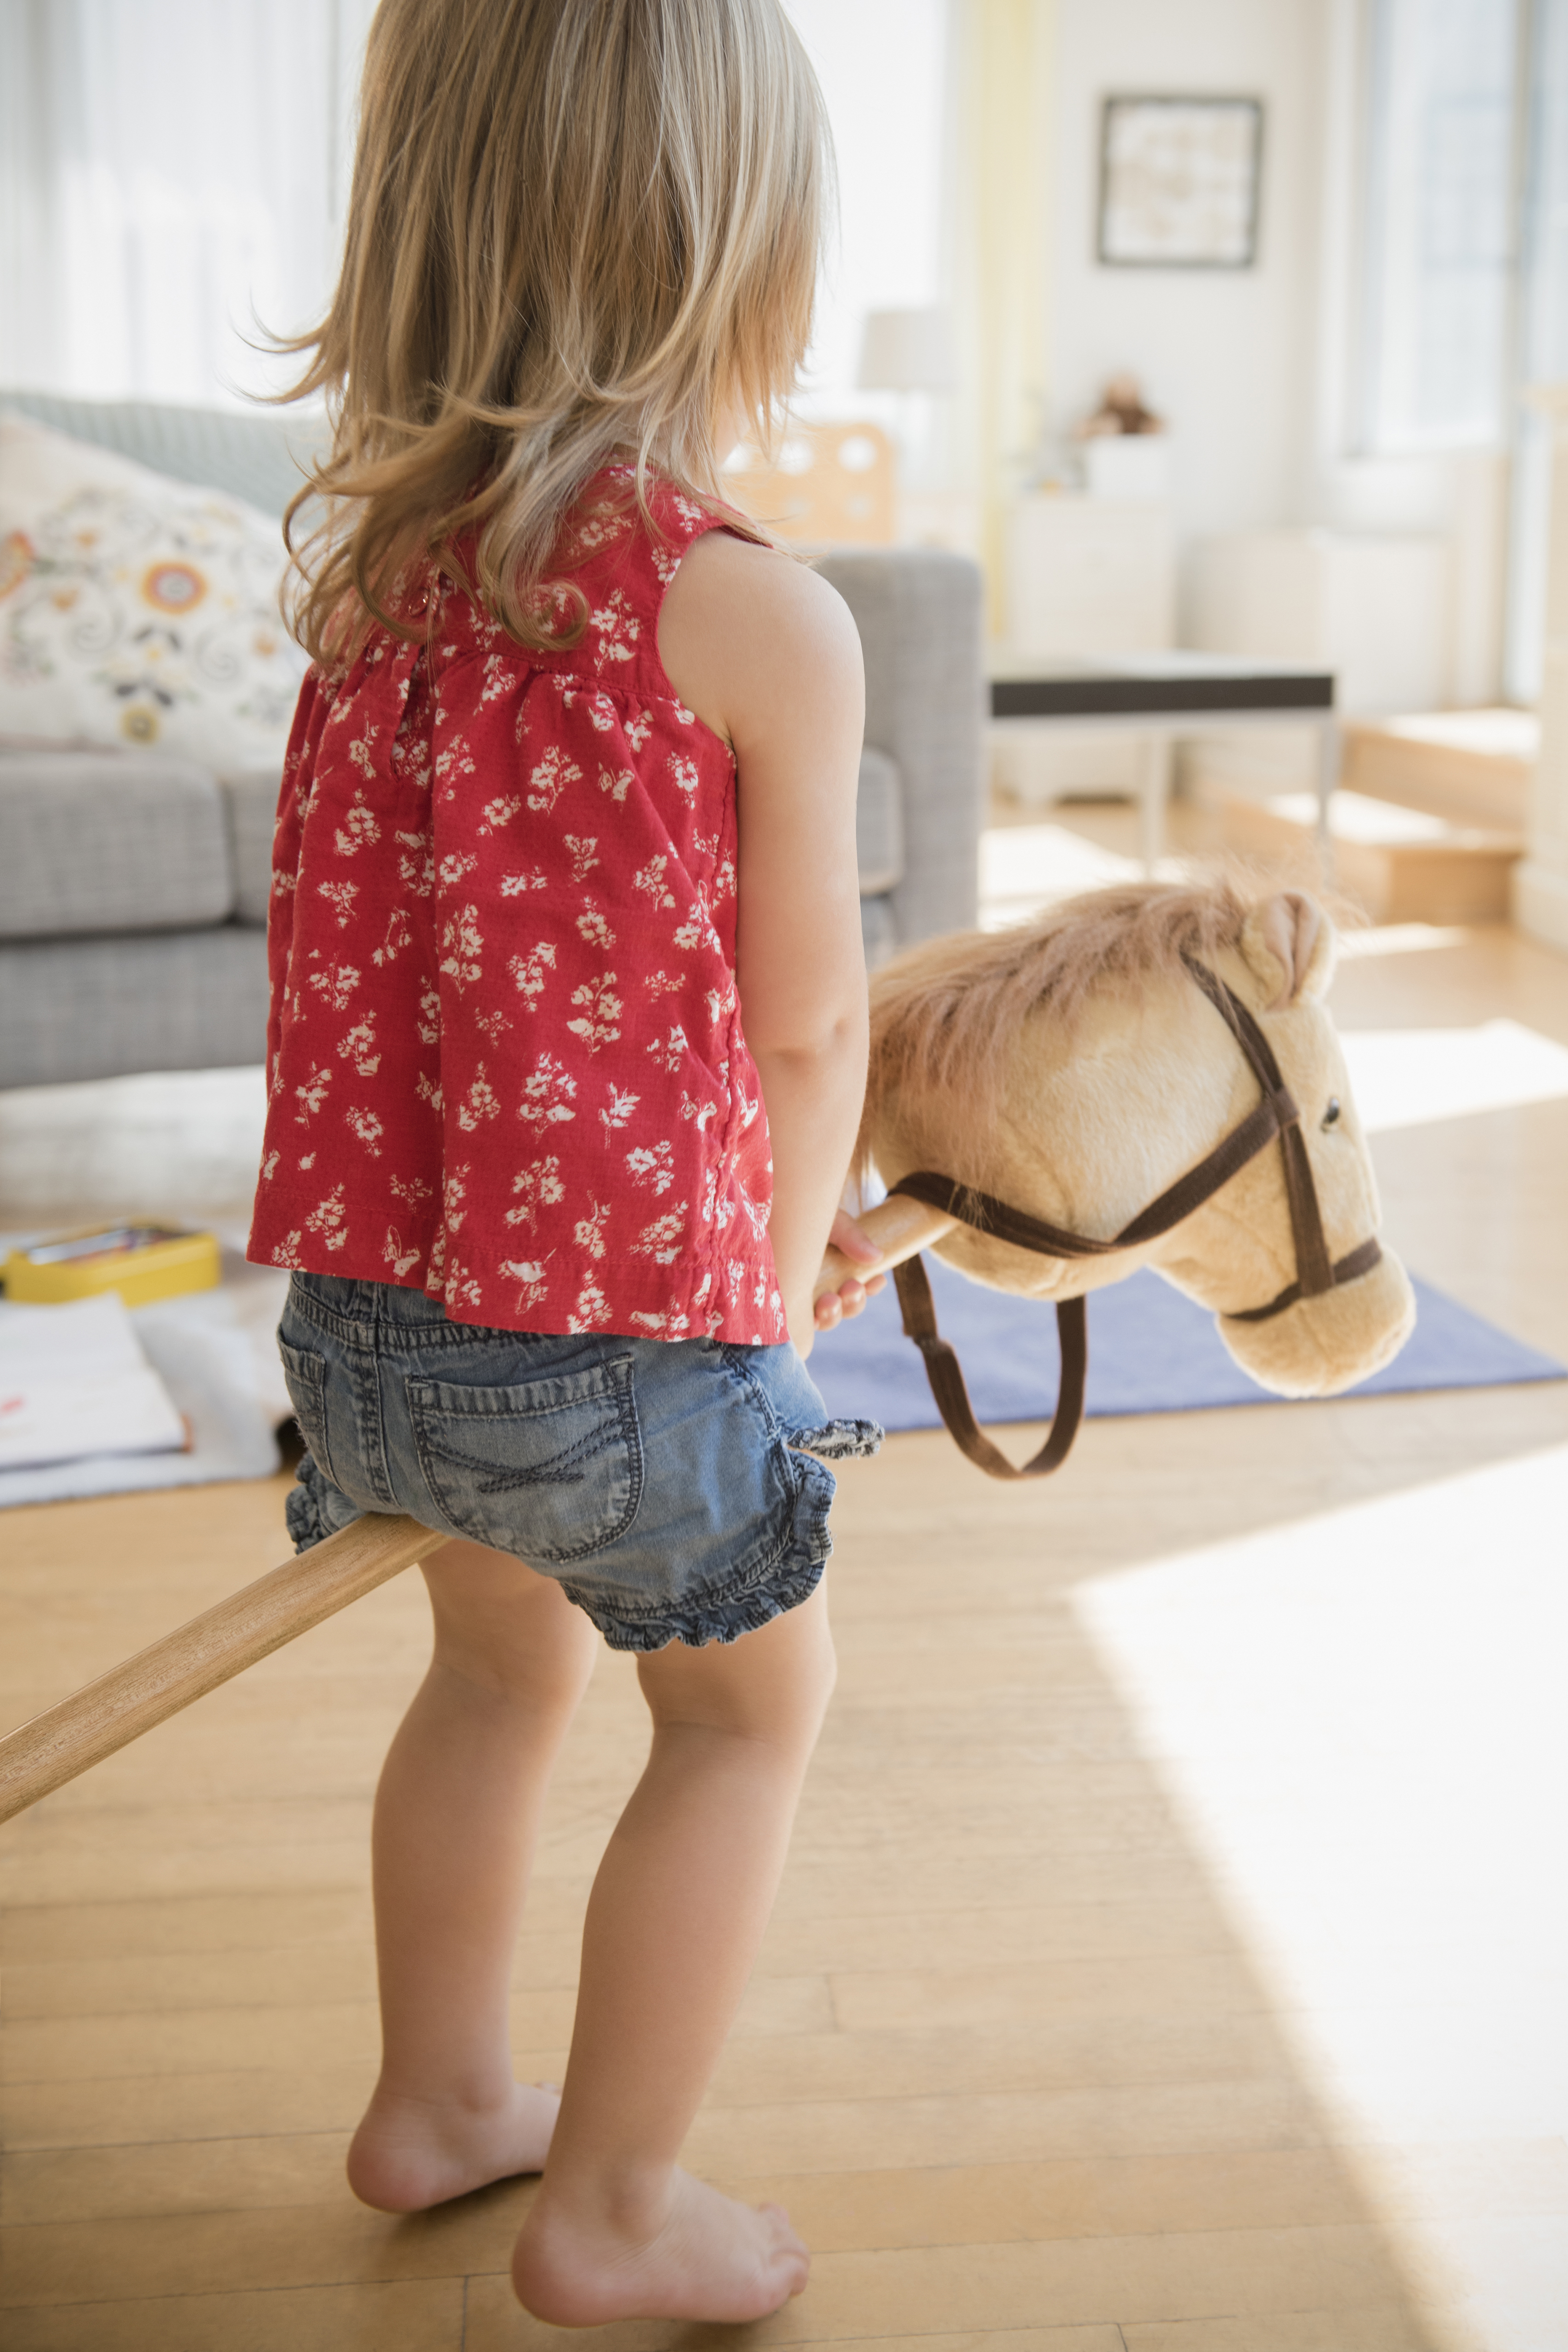 Caucasian girl playing with toy horse